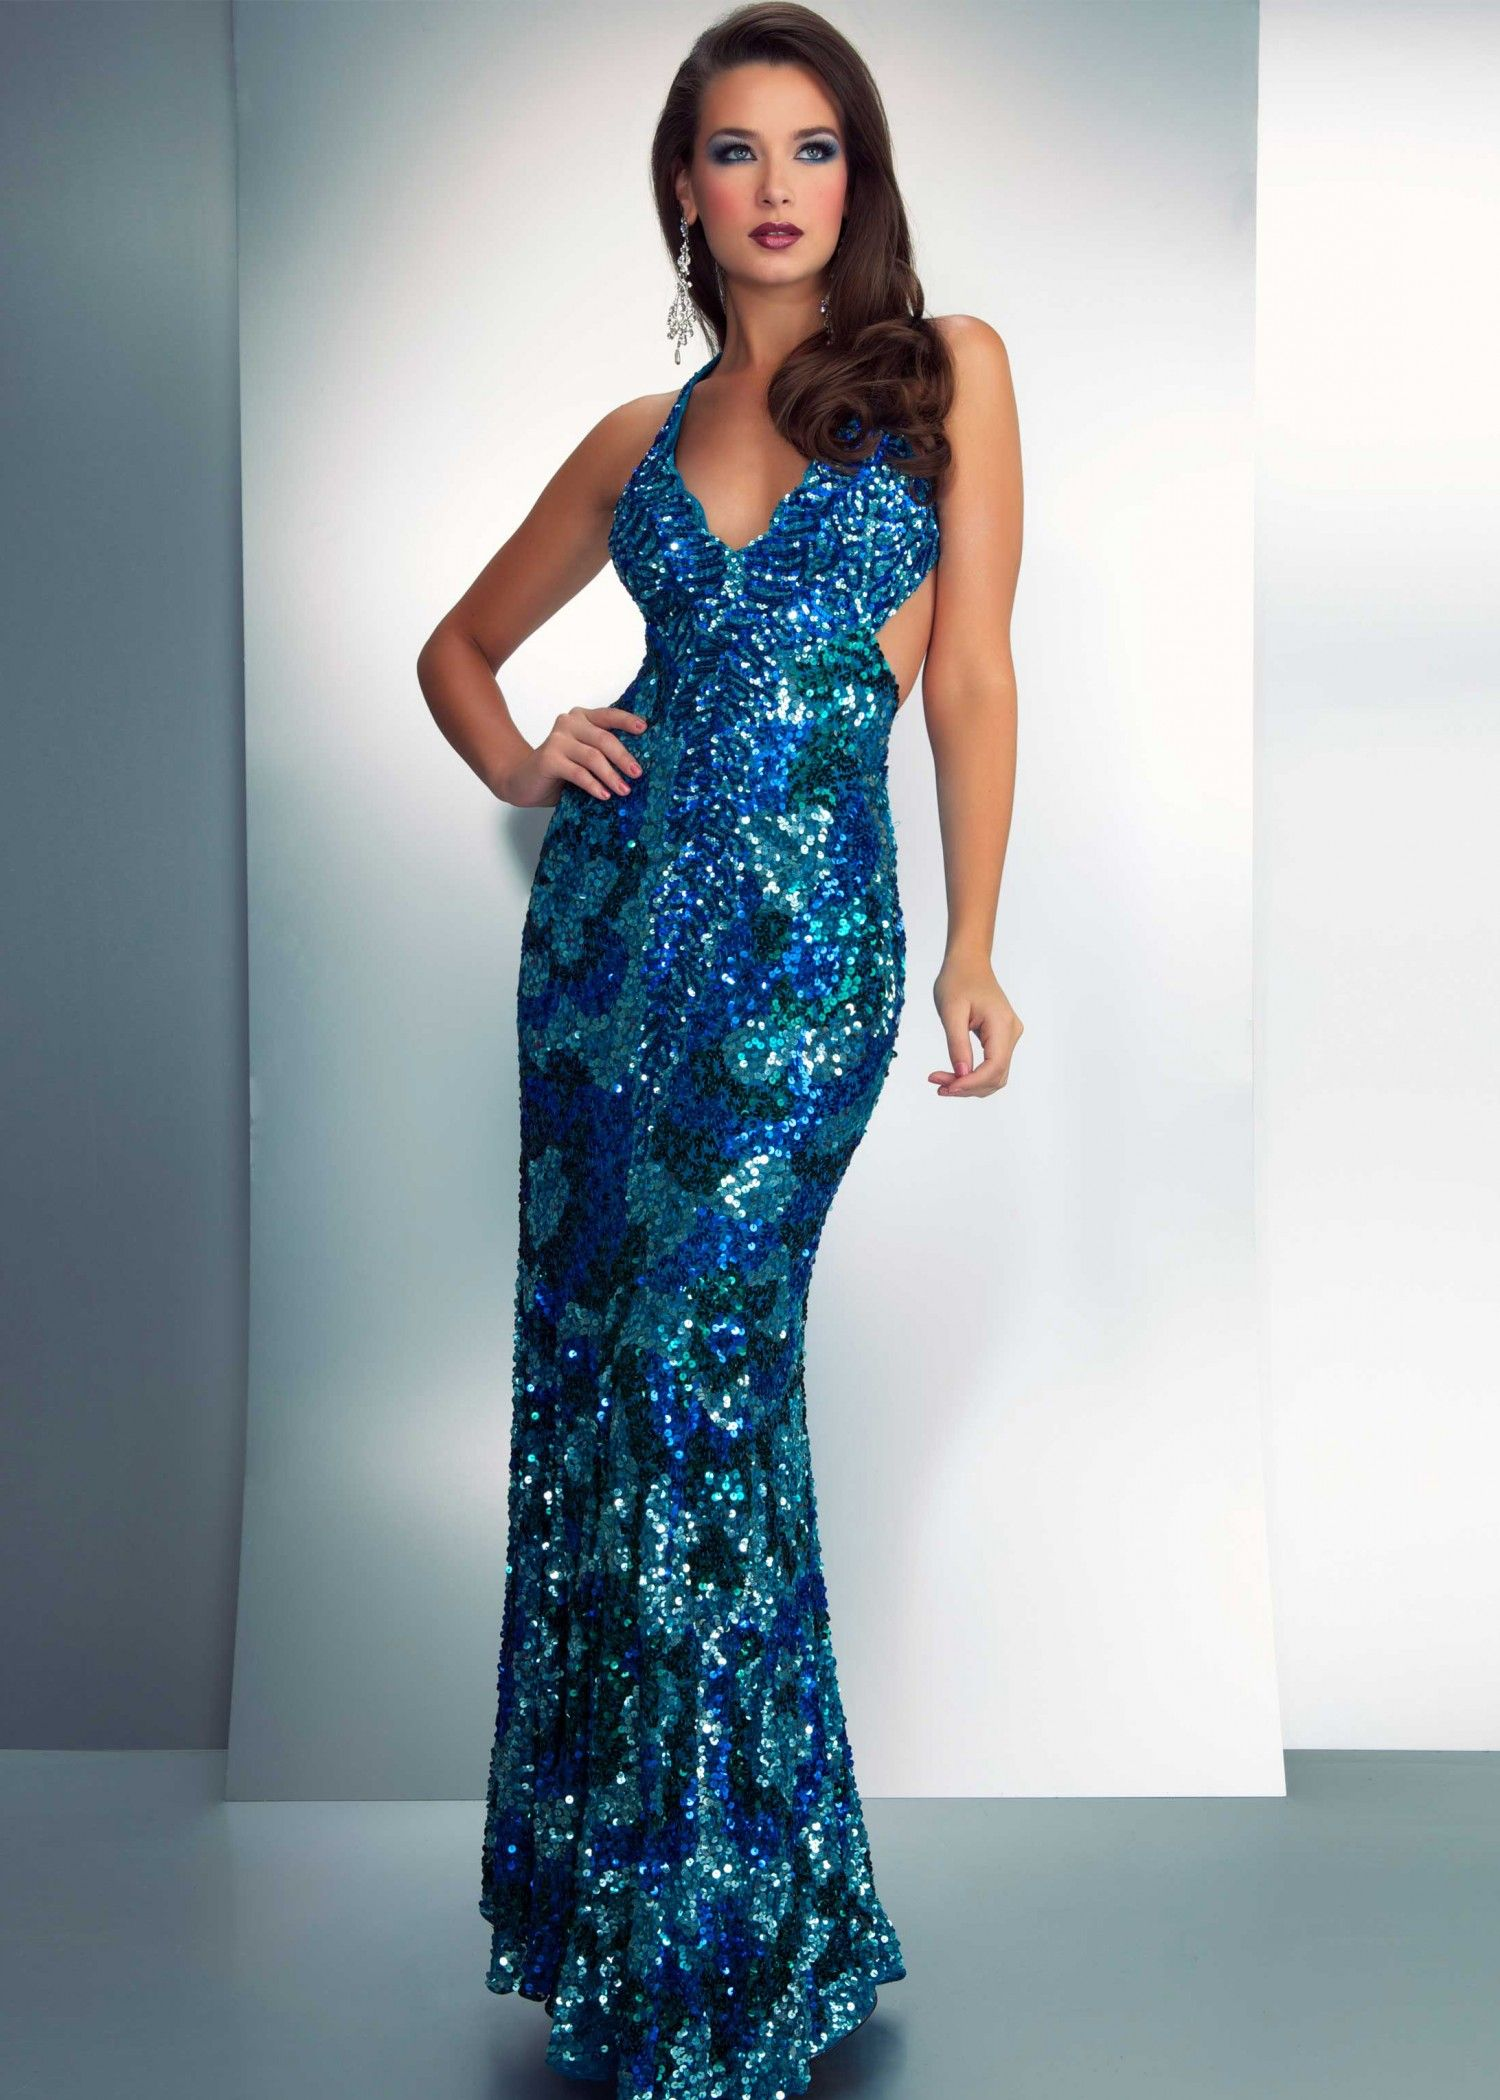 Cassandra stone by mac duggal peacock evening gown